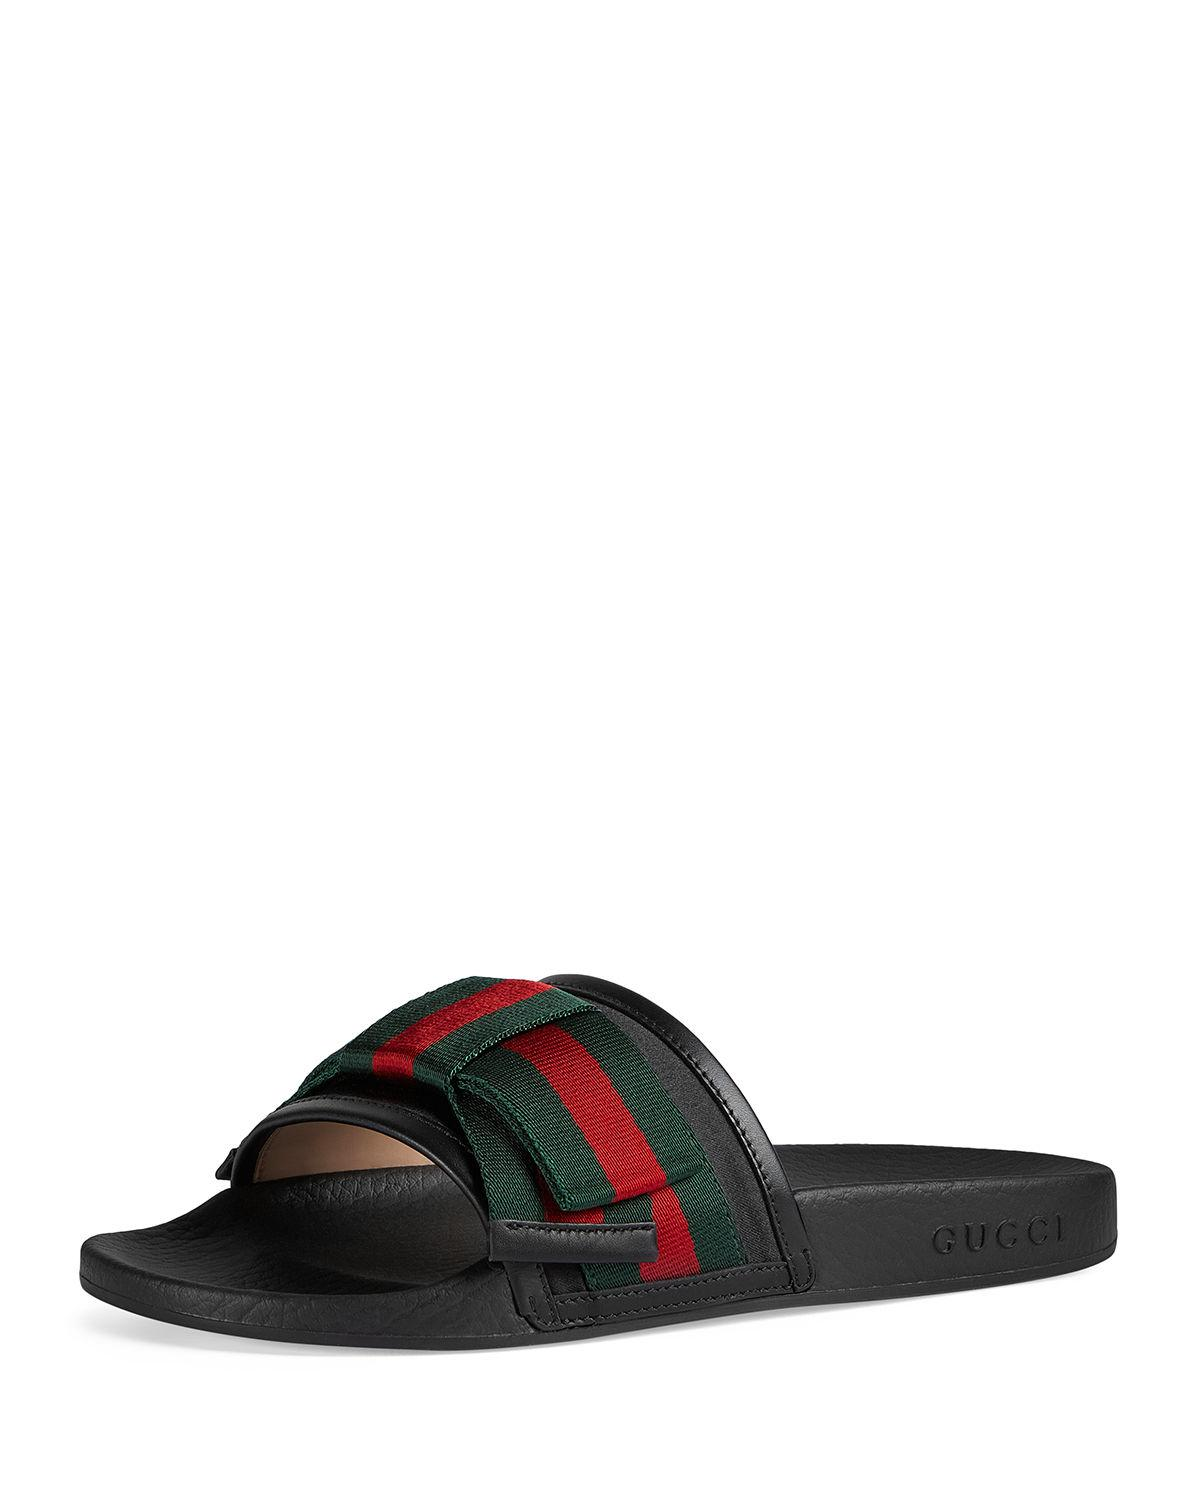 e53839b8e Lyst - Gucci Flat Pursuit Slide With Bow in Black - Save 25%